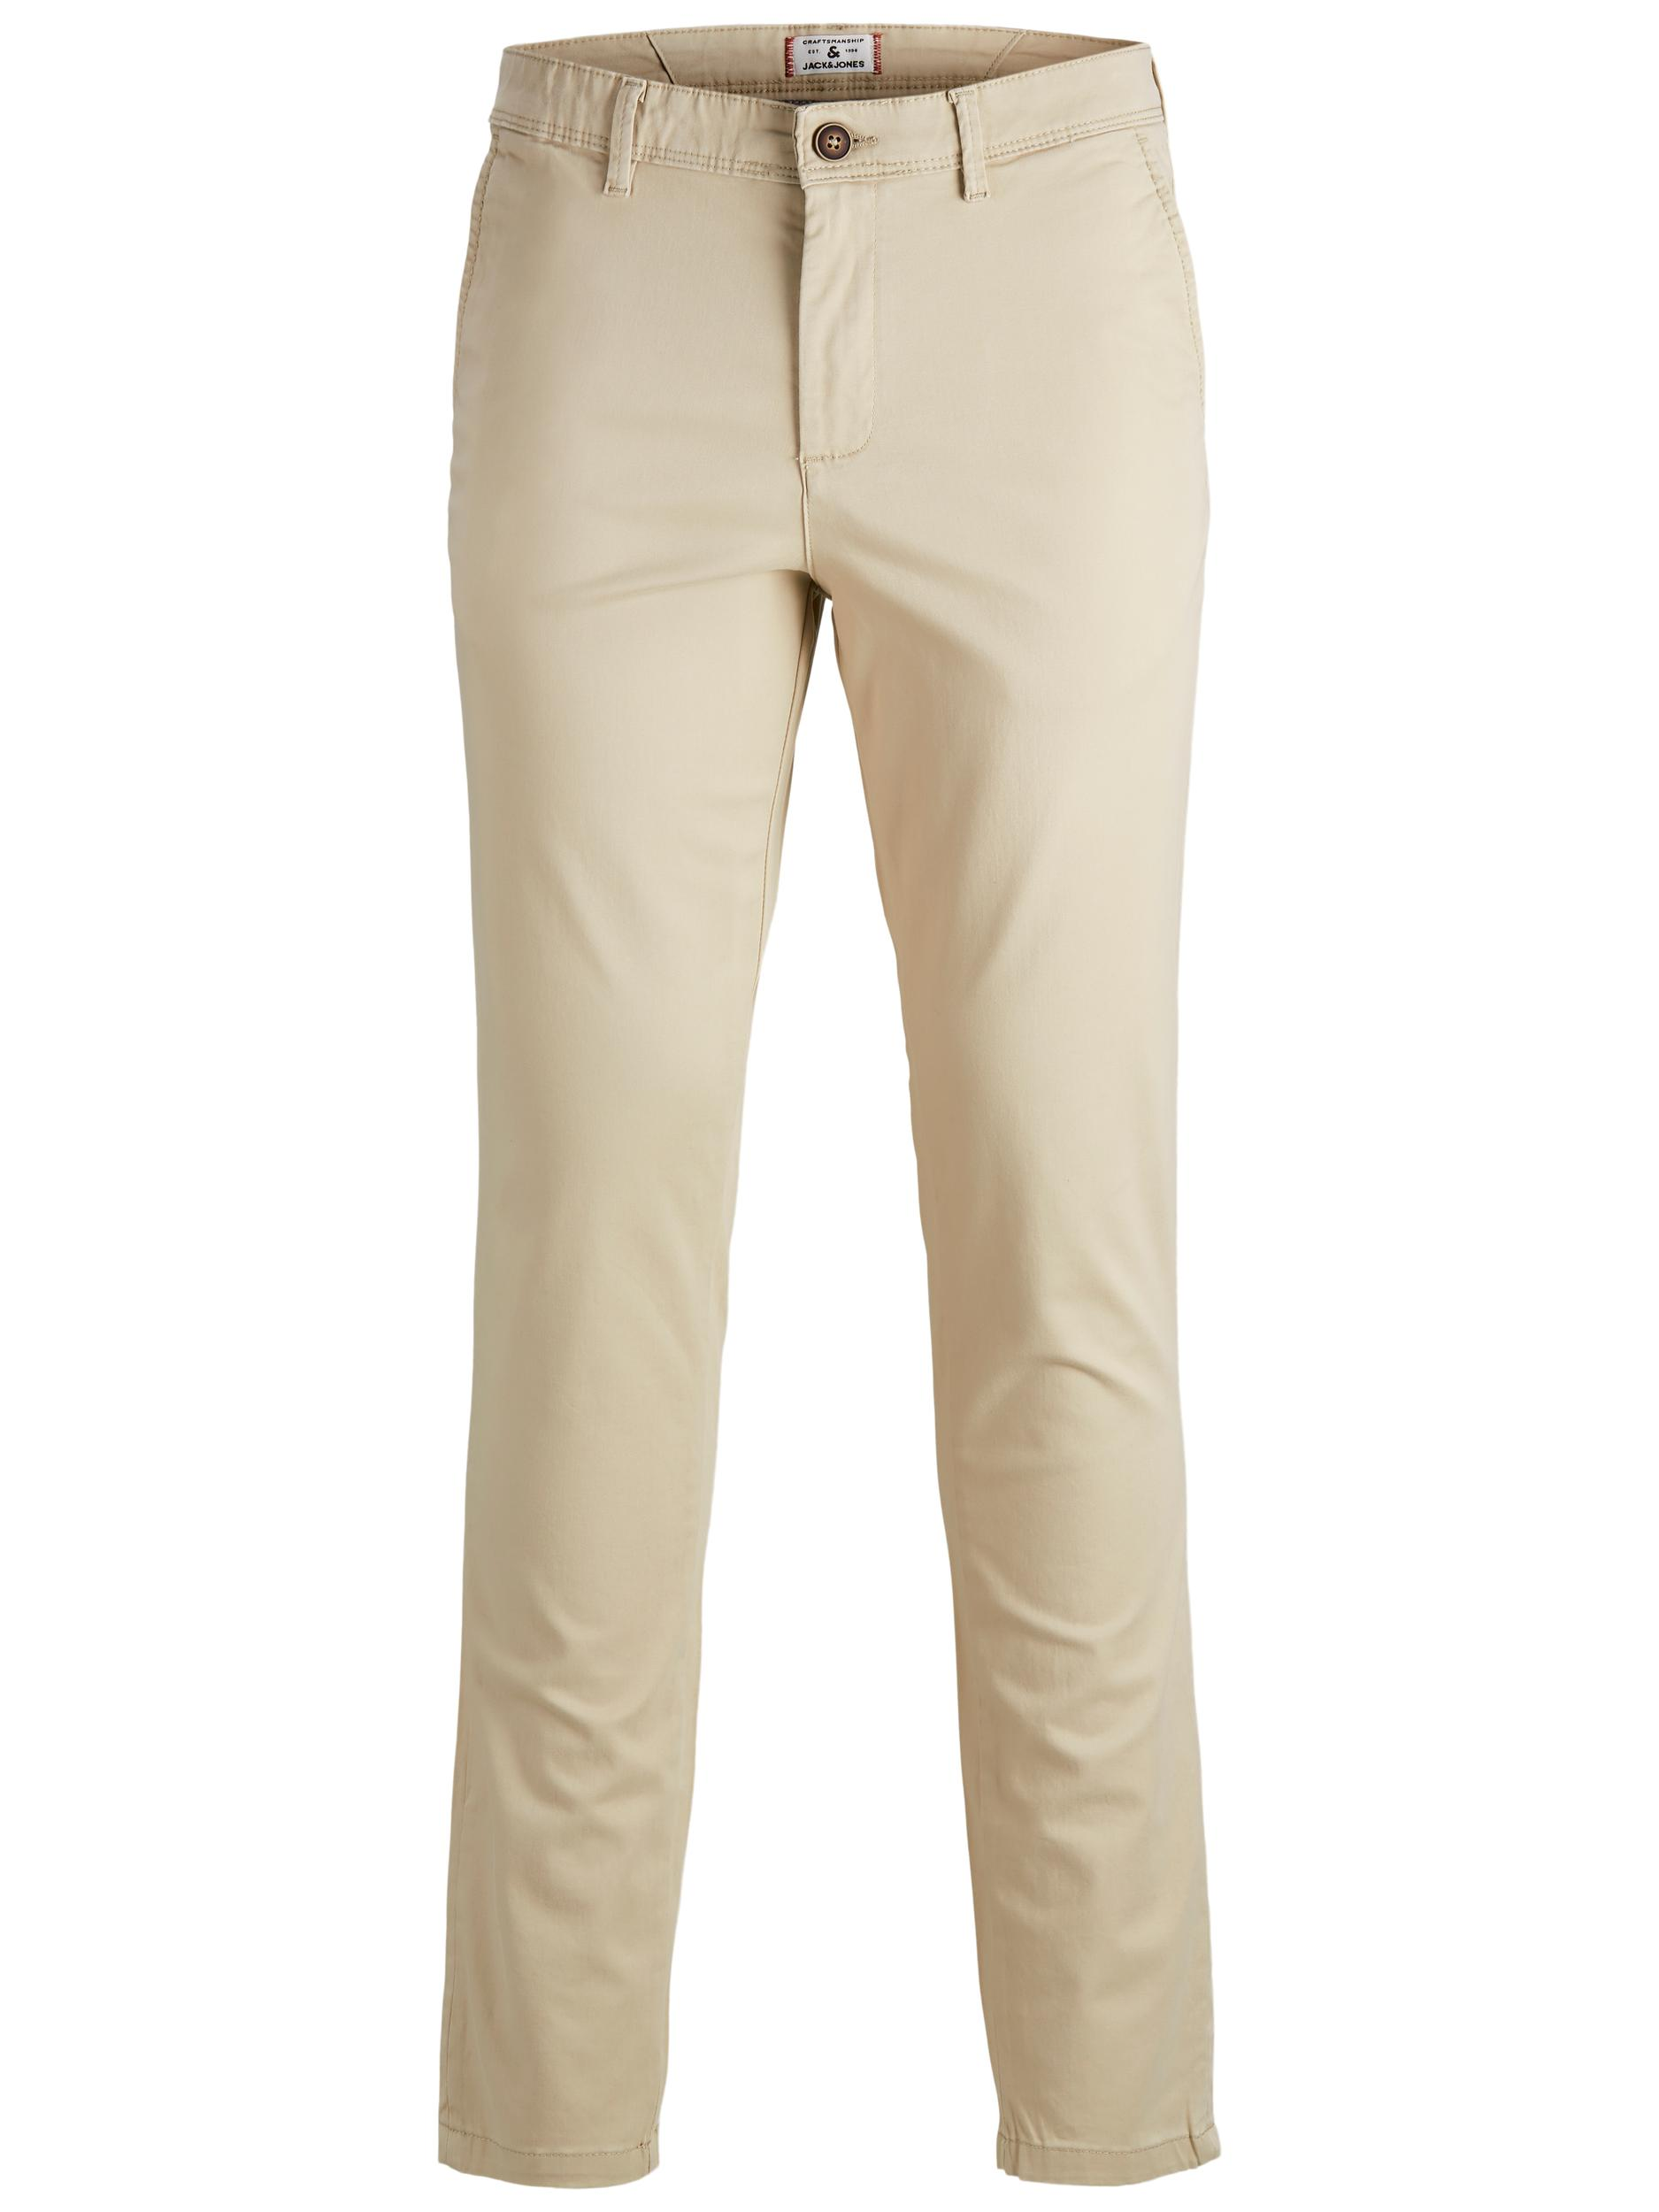 Jack & Jones Marco Bowie chinos, white pepper, 30/34